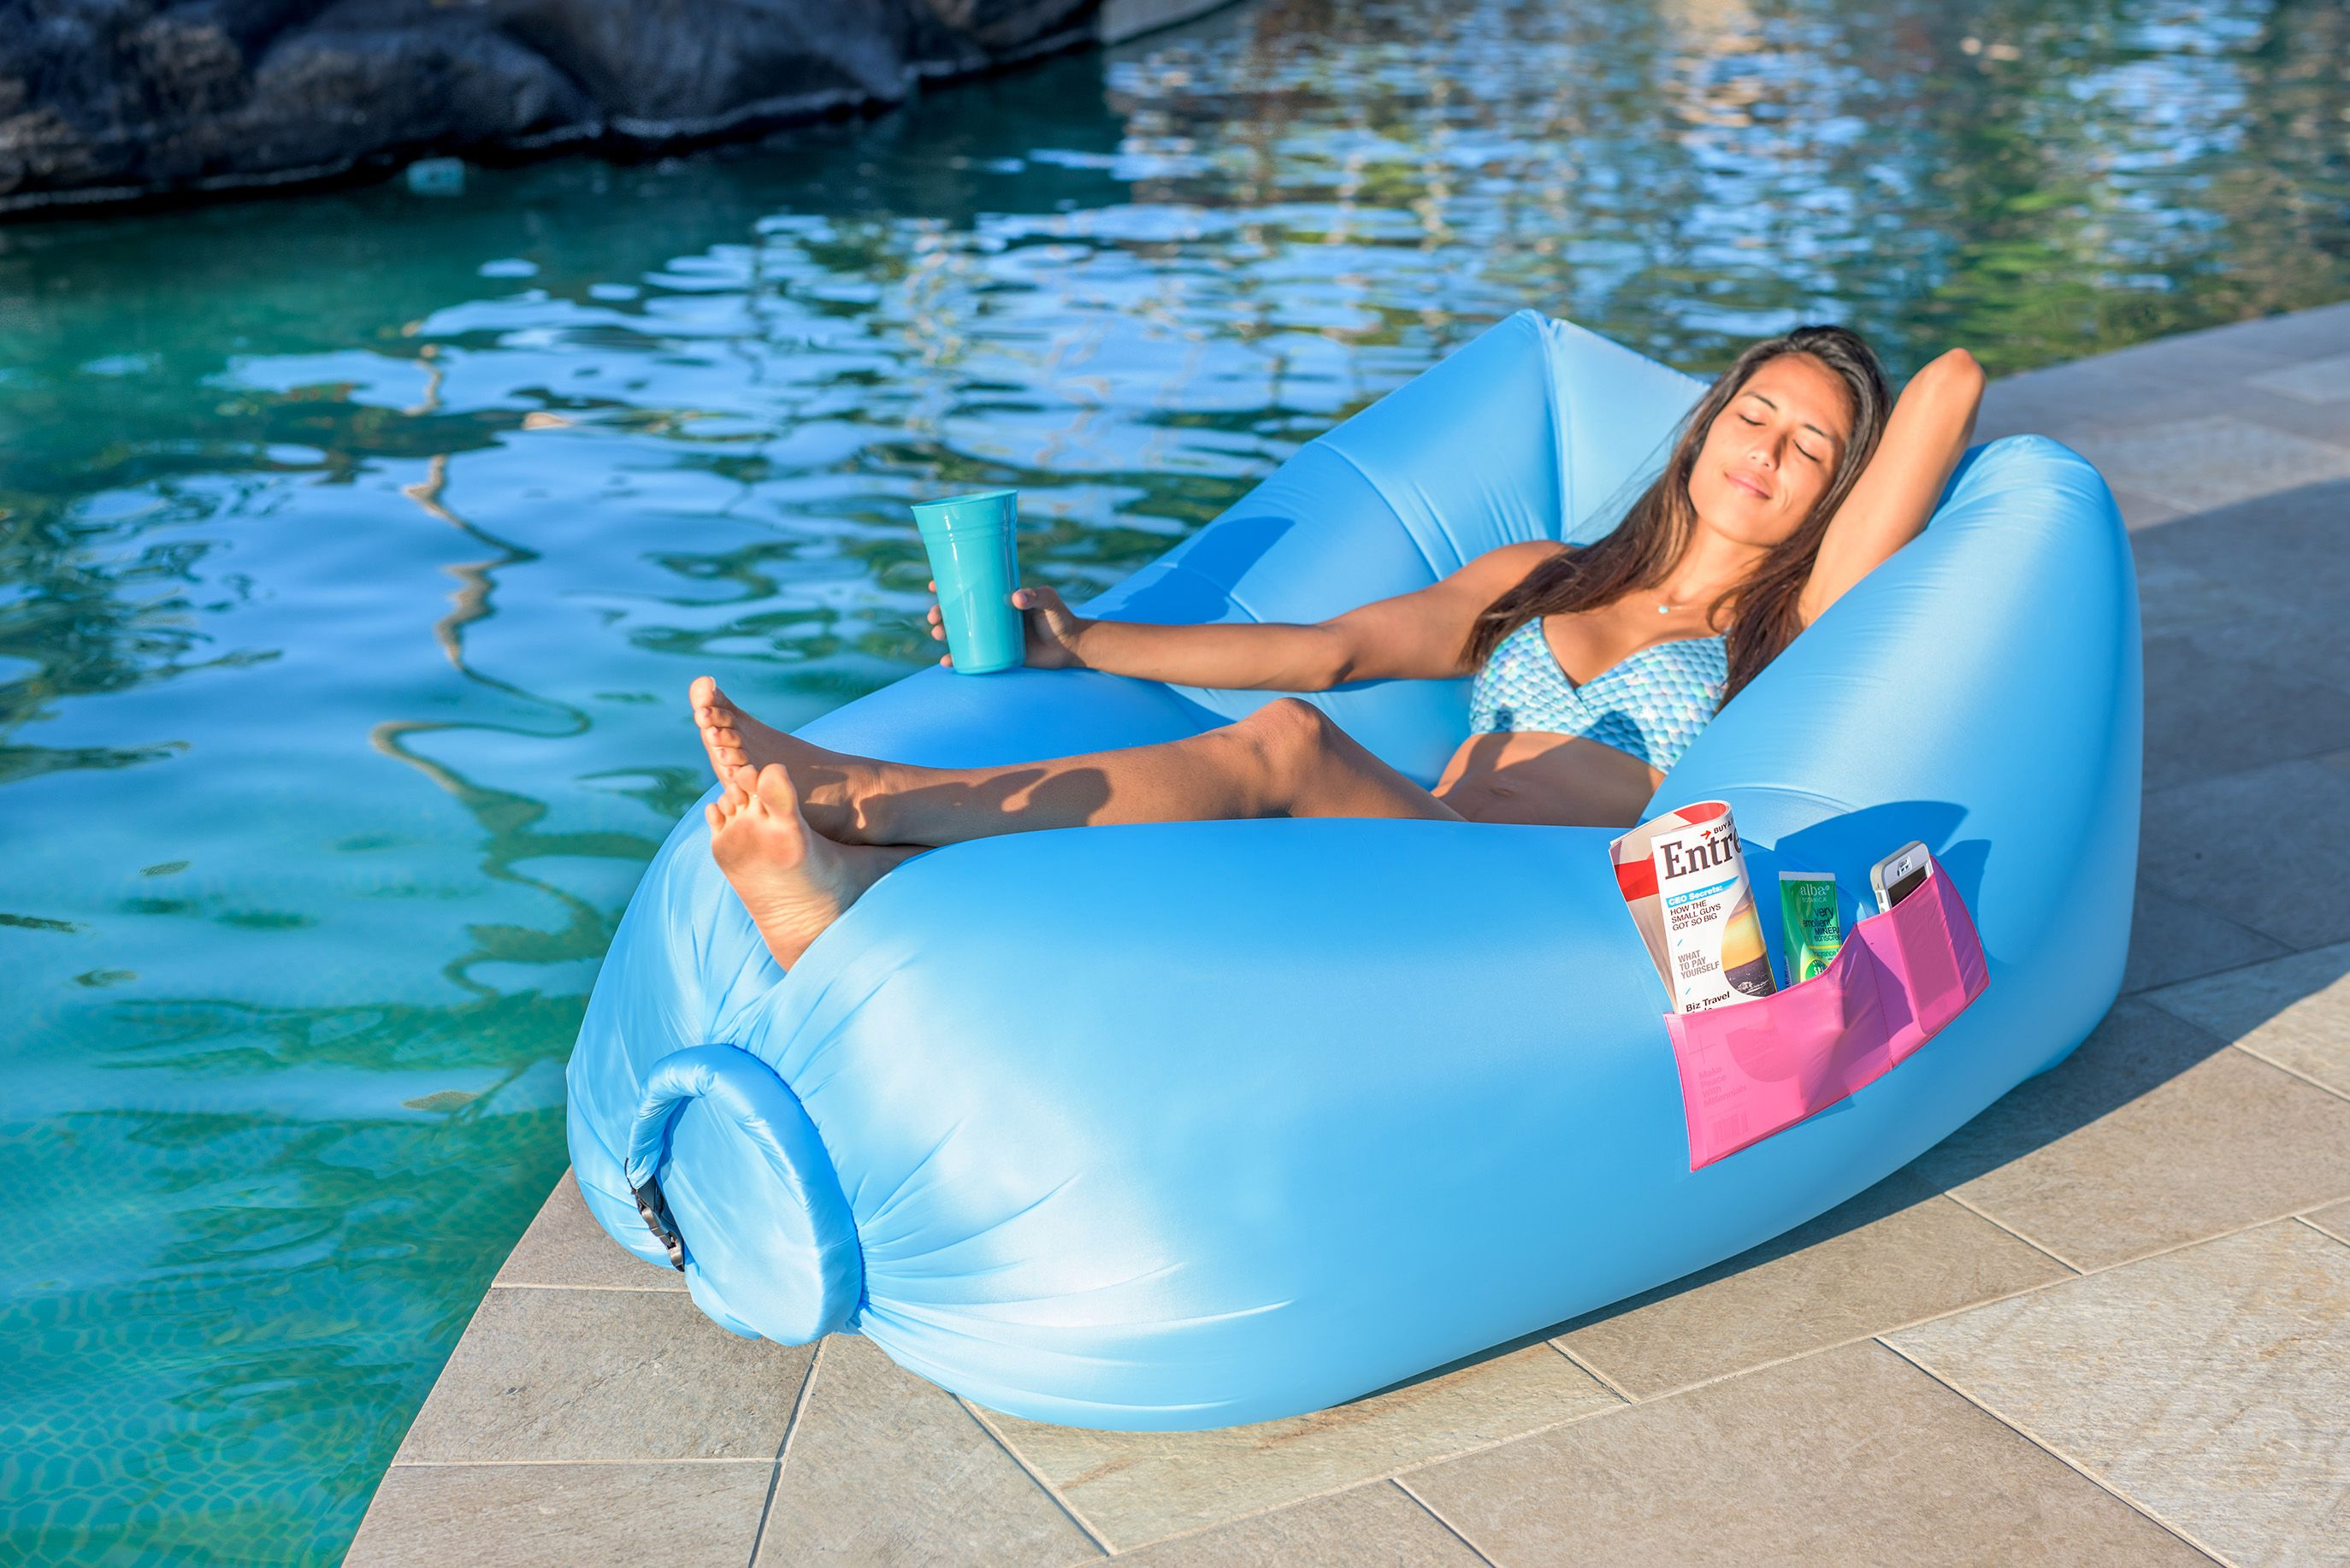 Inflatable air lounger for Camping Picnics Music Festivals